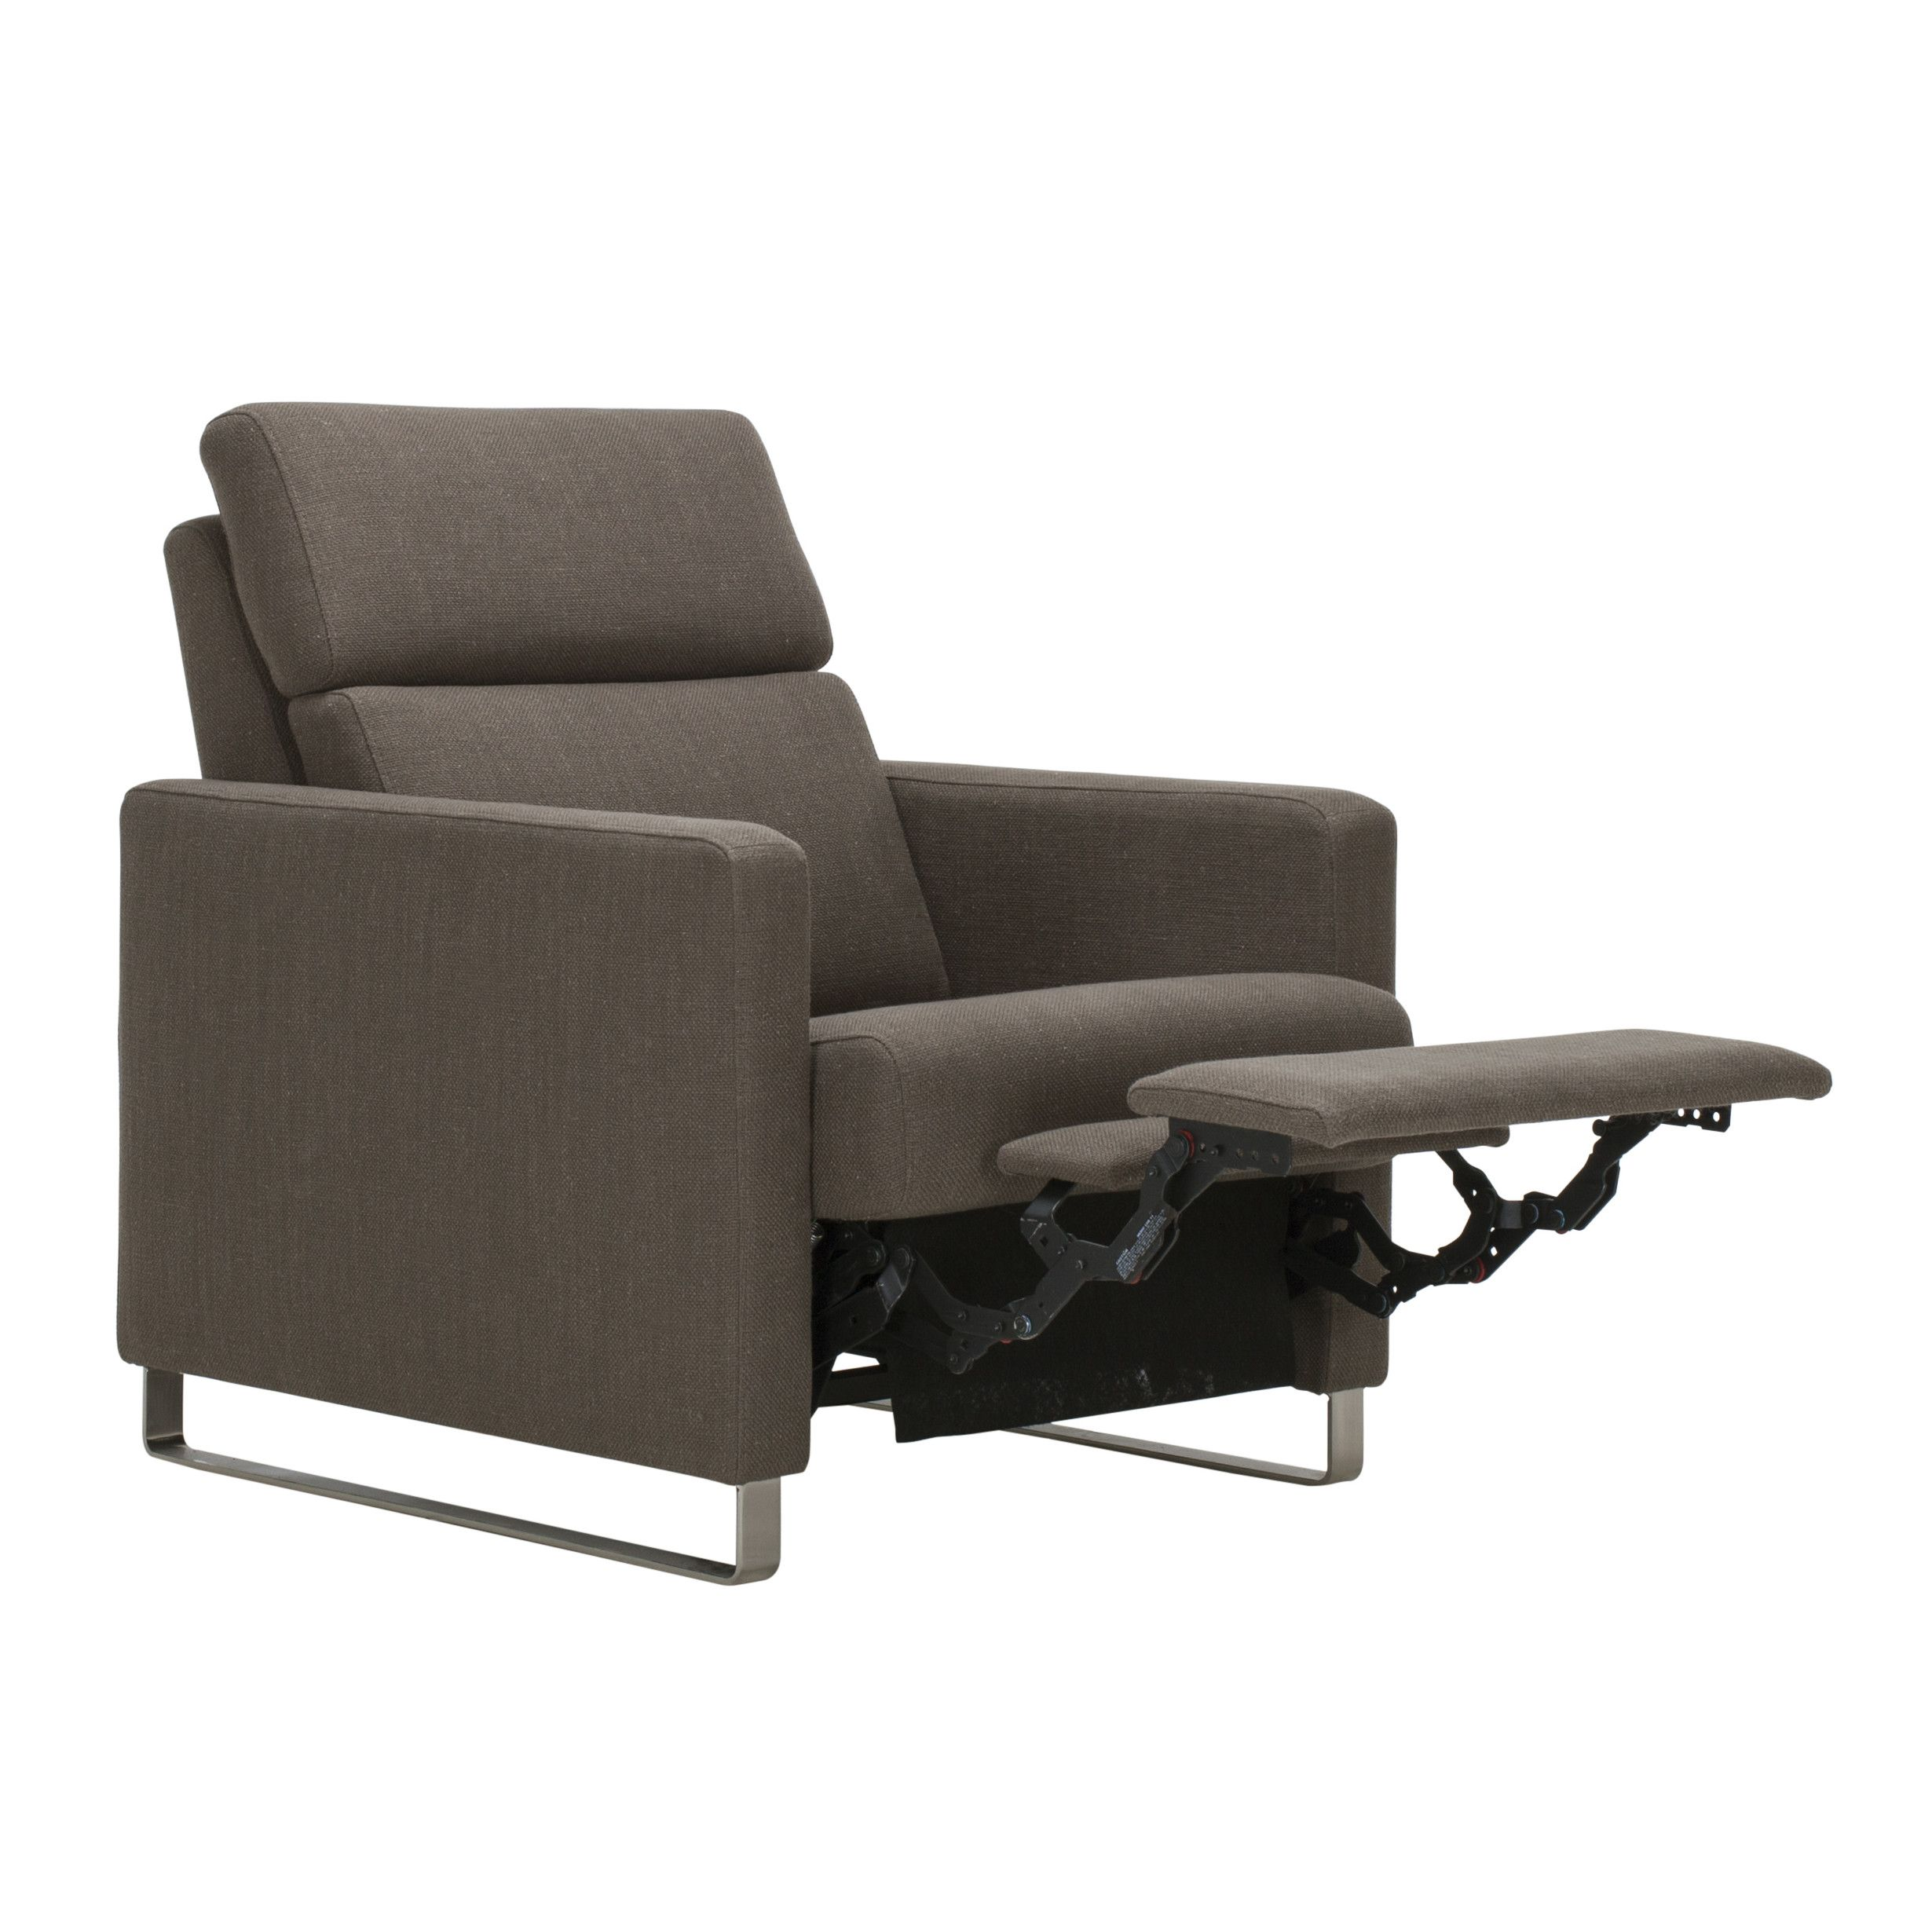 Wondrous Eq3 Lawrence Recliner In Urban Plum House Home Ncnpc Chair Design For Home Ncnpcorg